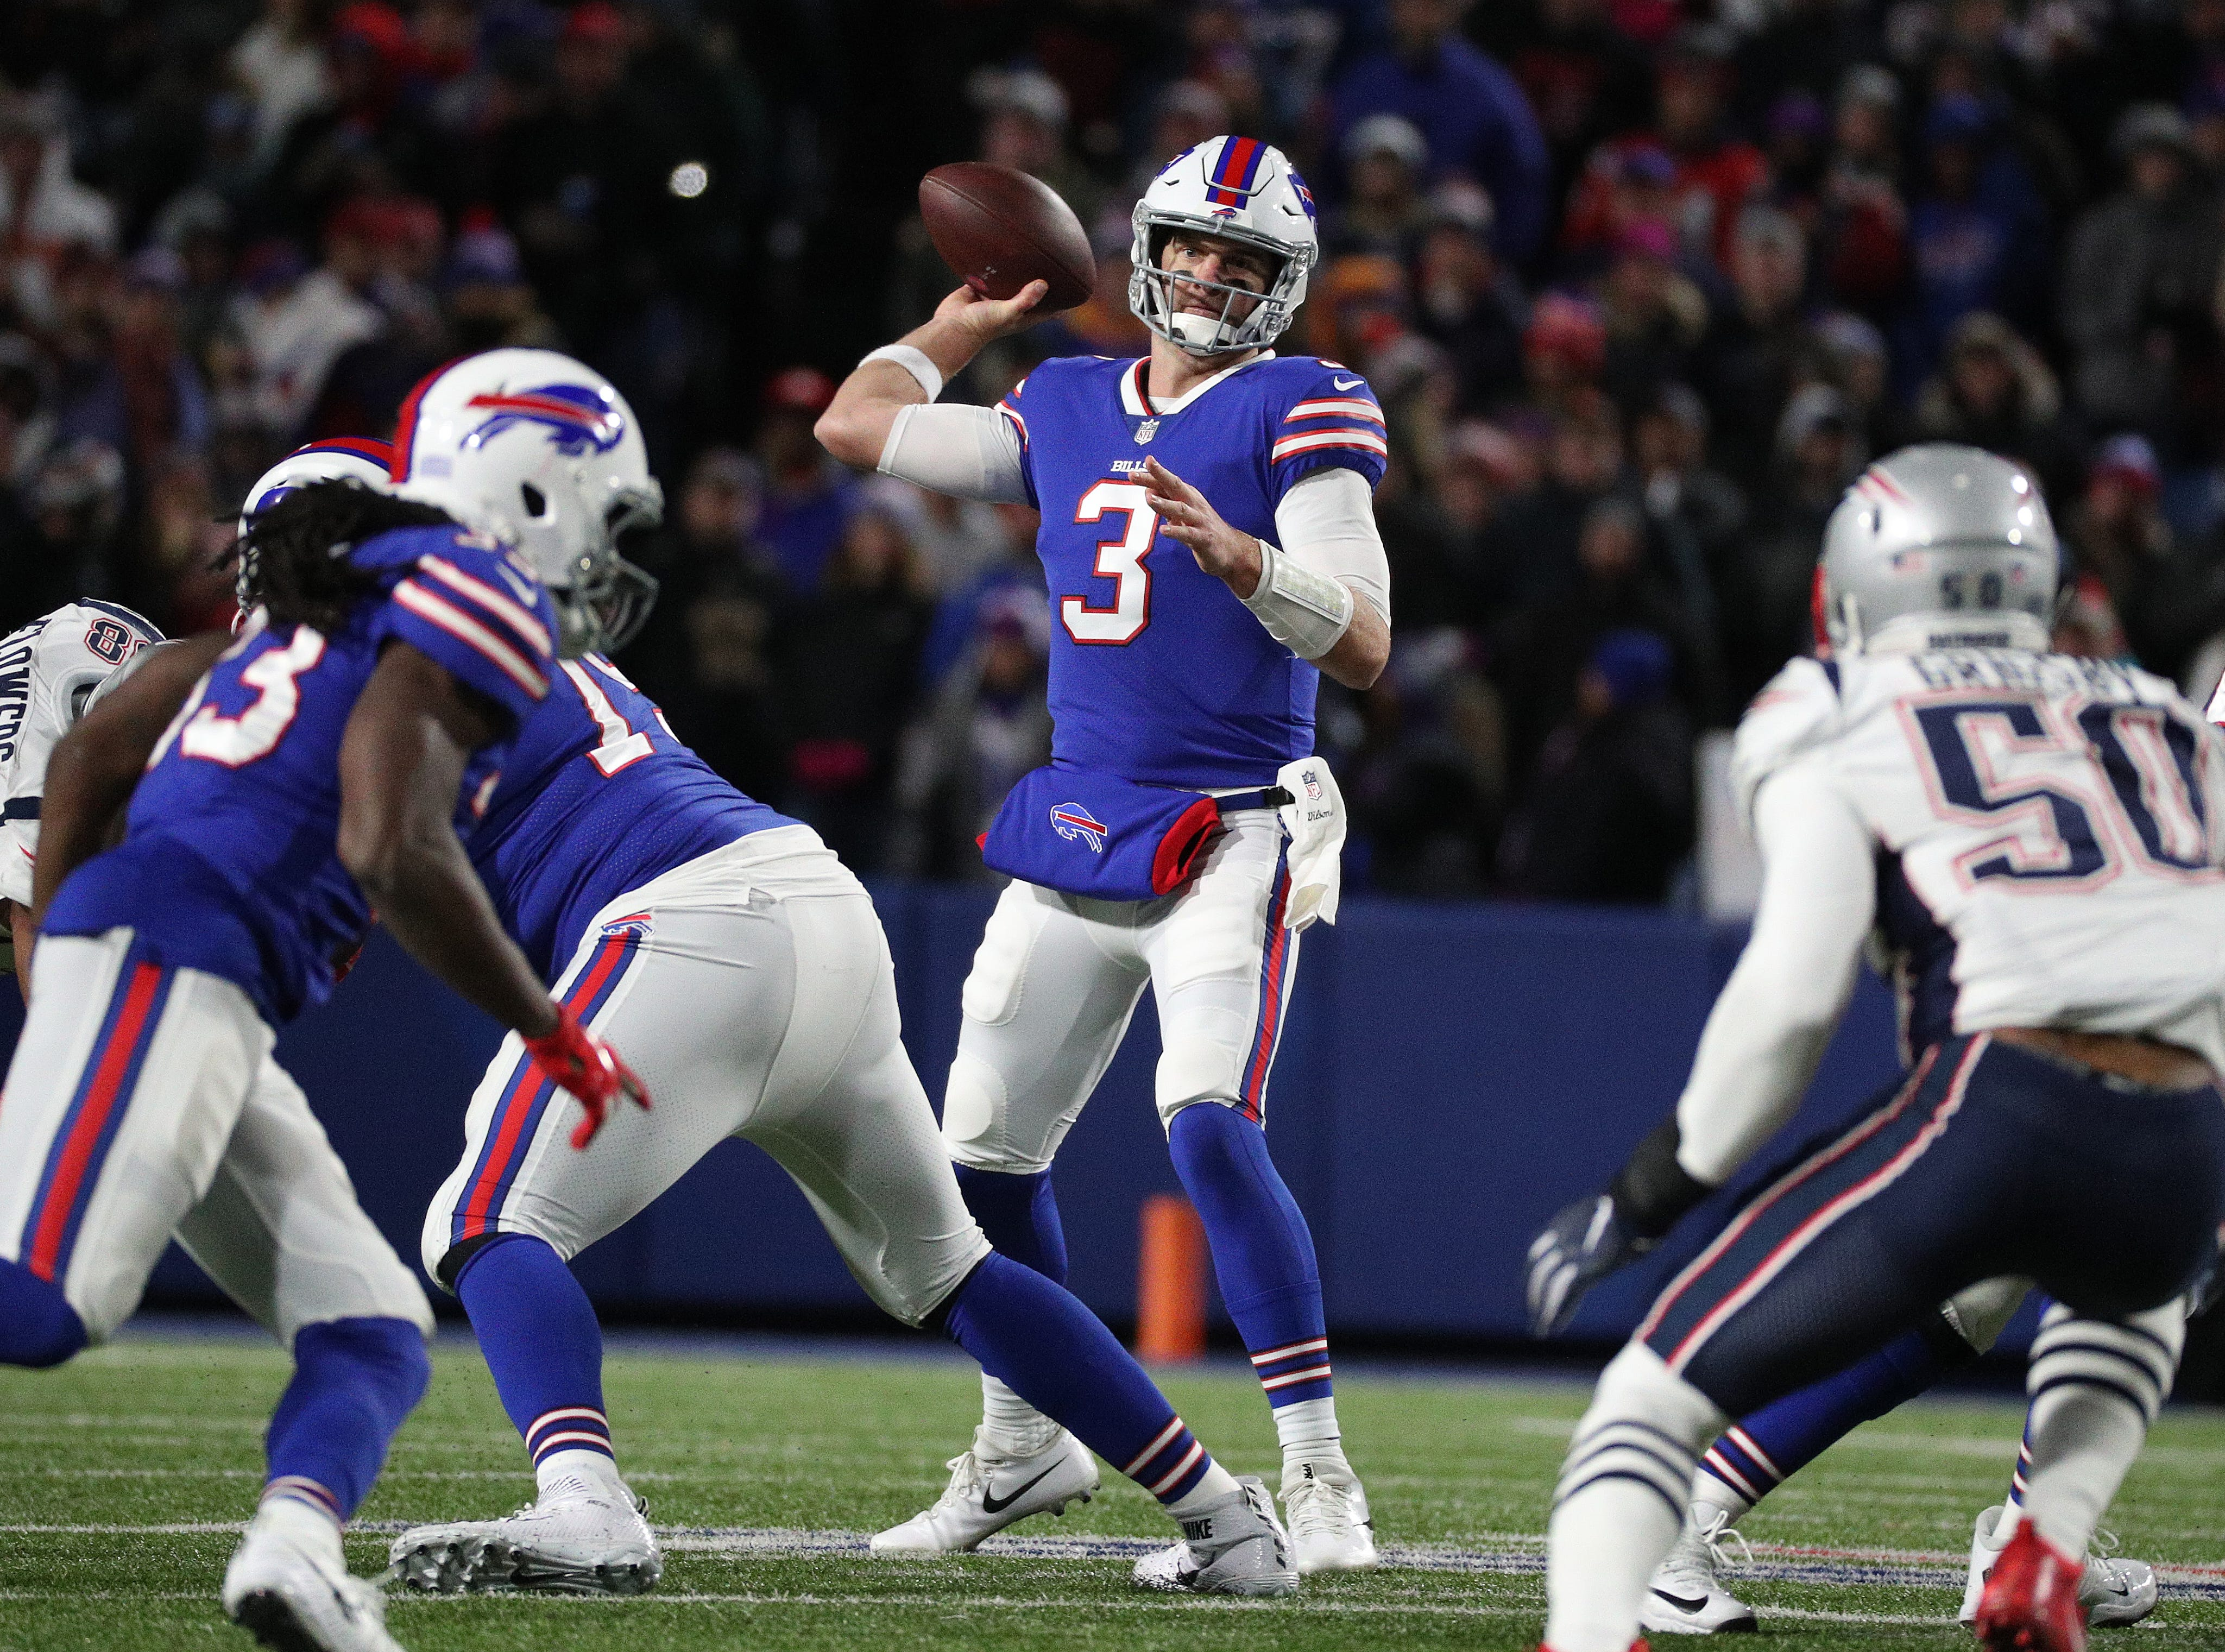 Bills receiver Derek Anderson looks for looks for a receiver against the Patriots.